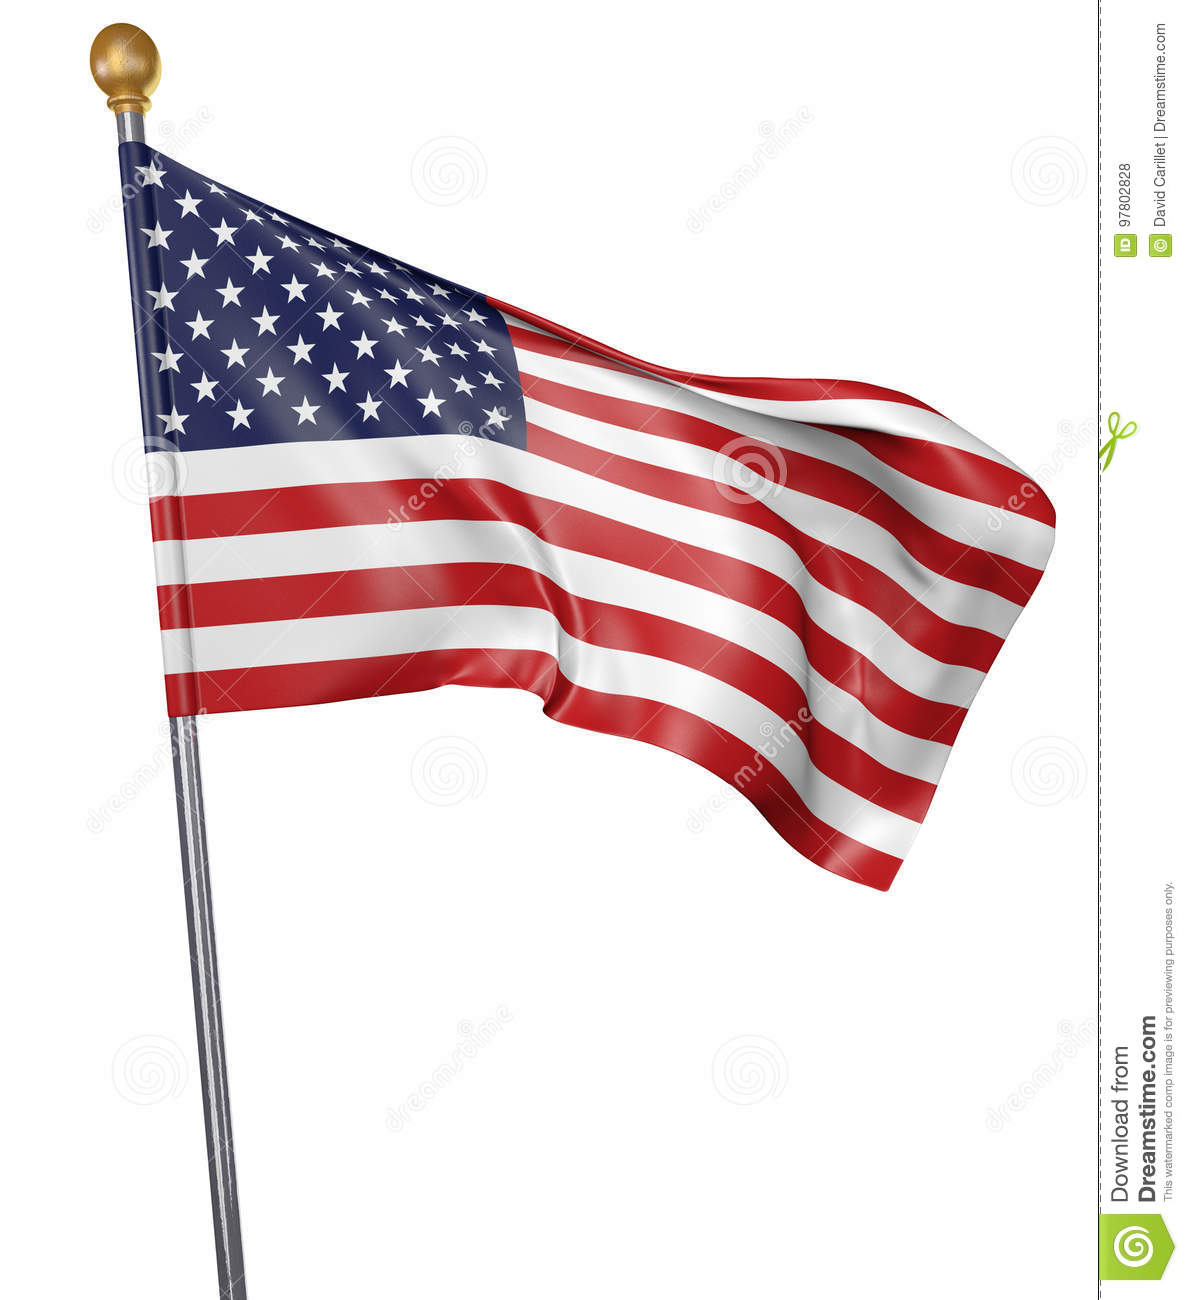 National flag for country of United States isolated on white background